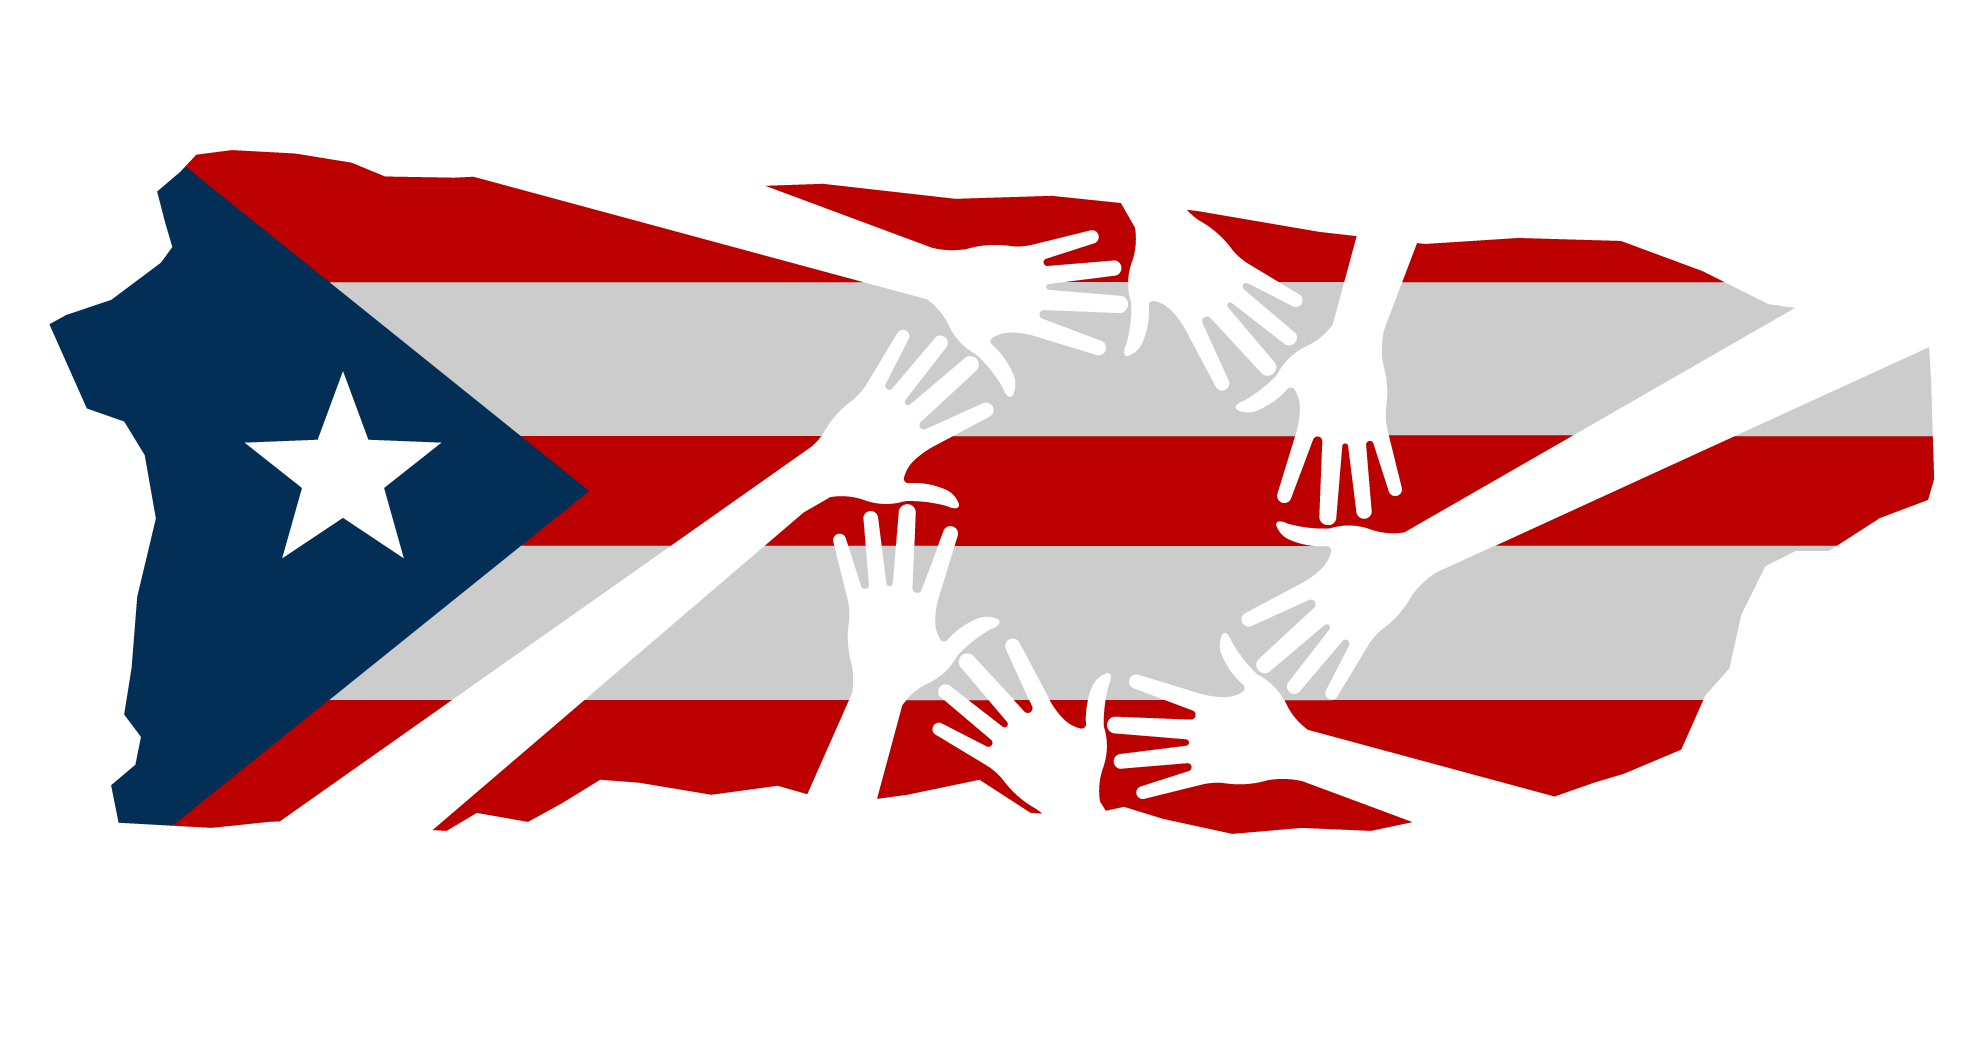 Hurricane flag png. Helping puerto rico after